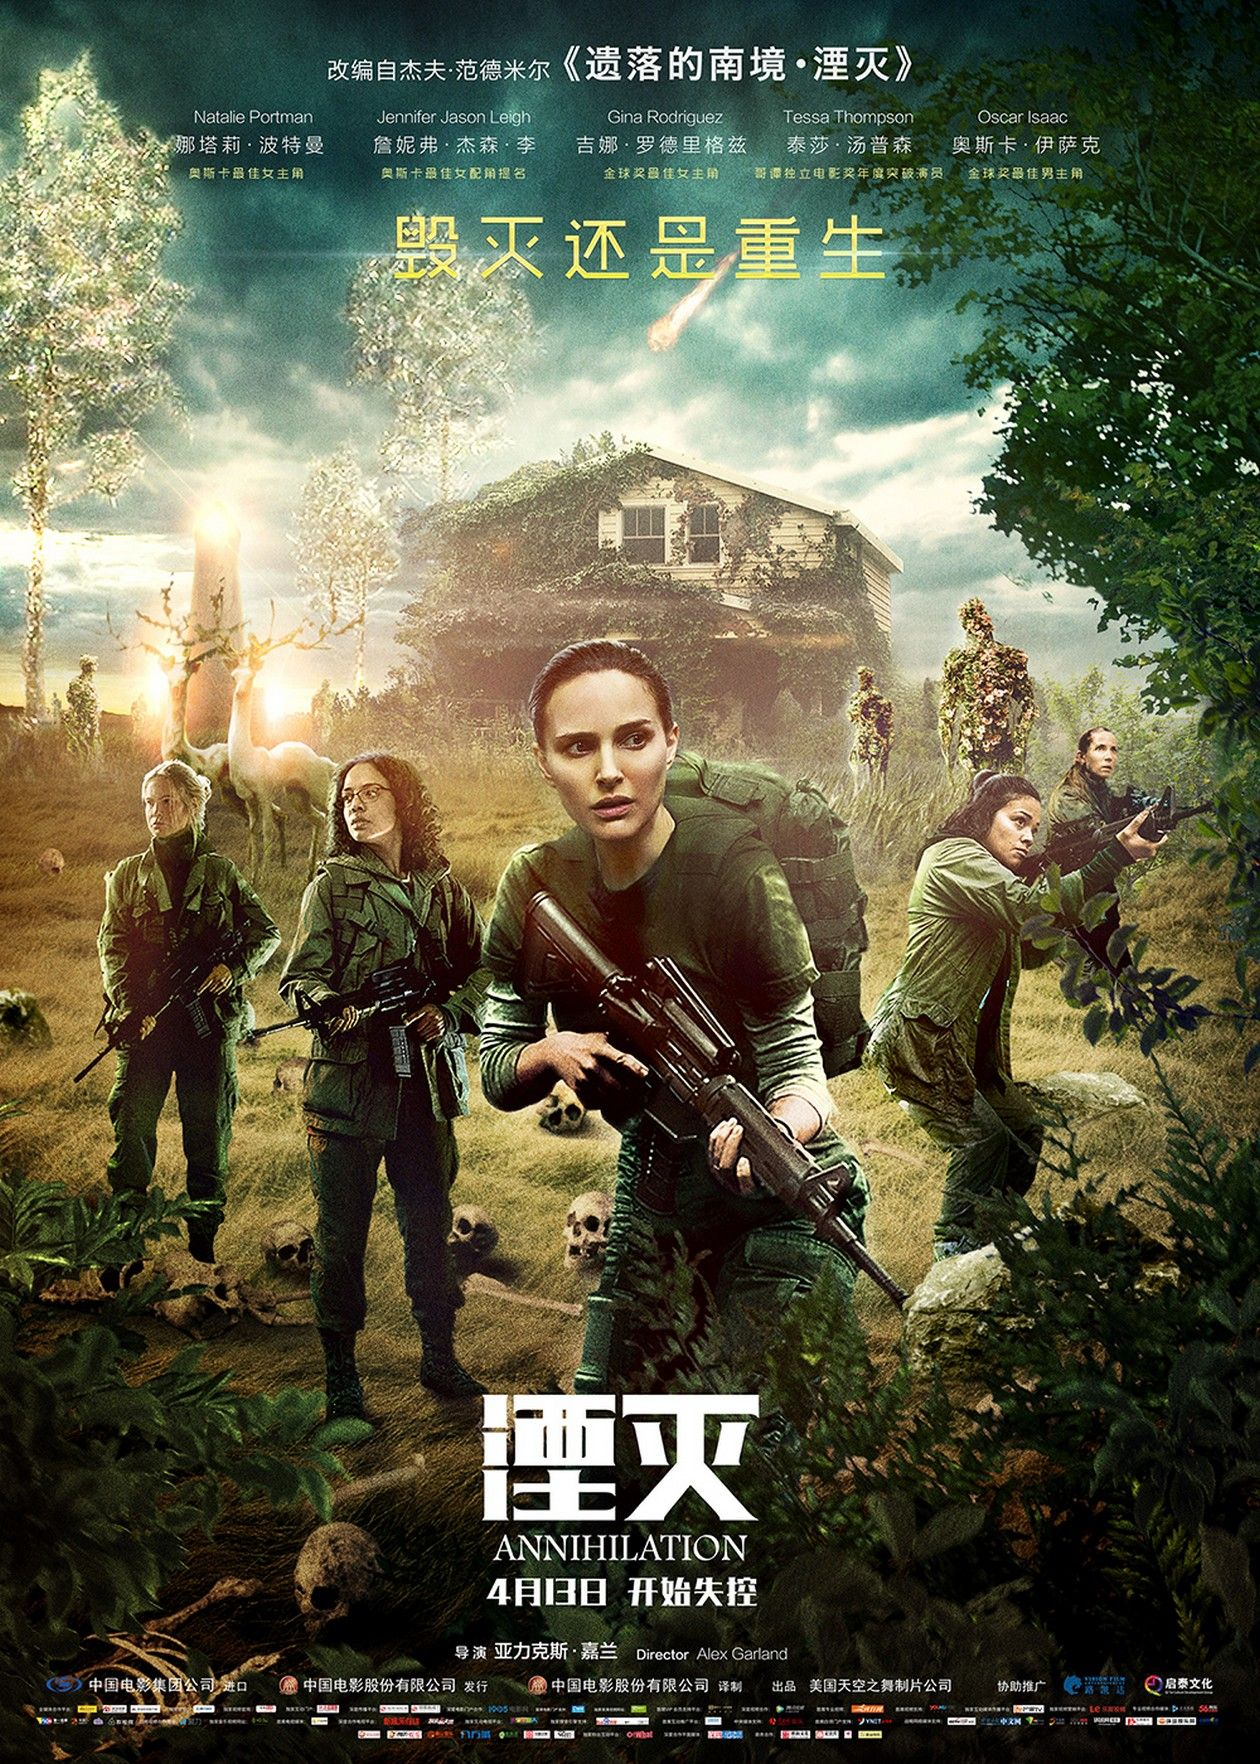 Natalie Portman actress | Annihilation / Alex Garland / Chinese Movie Poster / Affiche chinoise du film